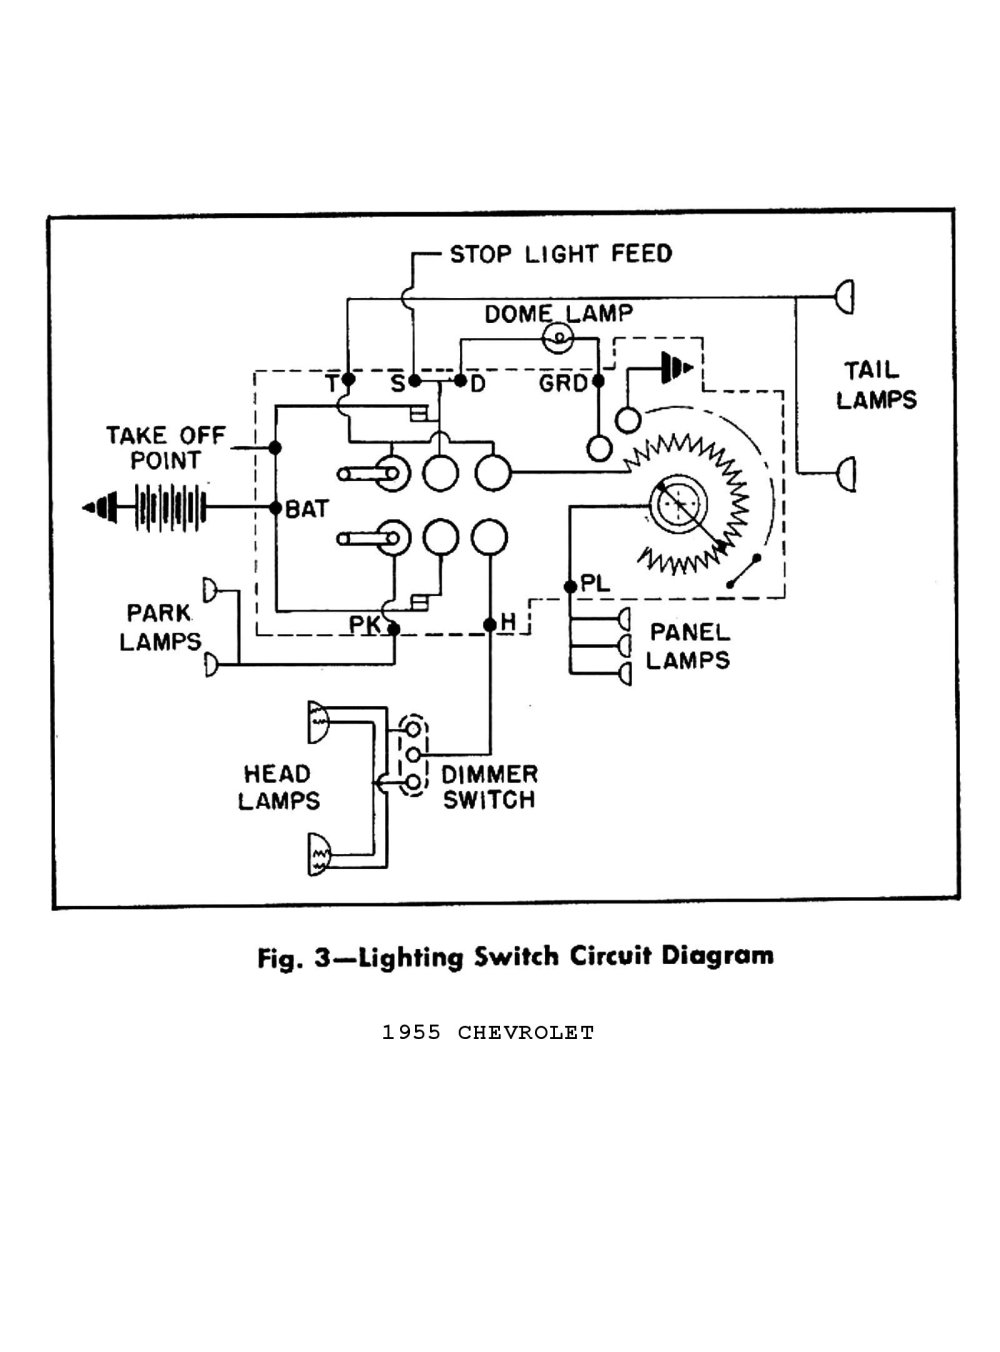 medium resolution of 1955 truck wiring diagrams 1955 electric windows seats 1955 lighting switch circuit